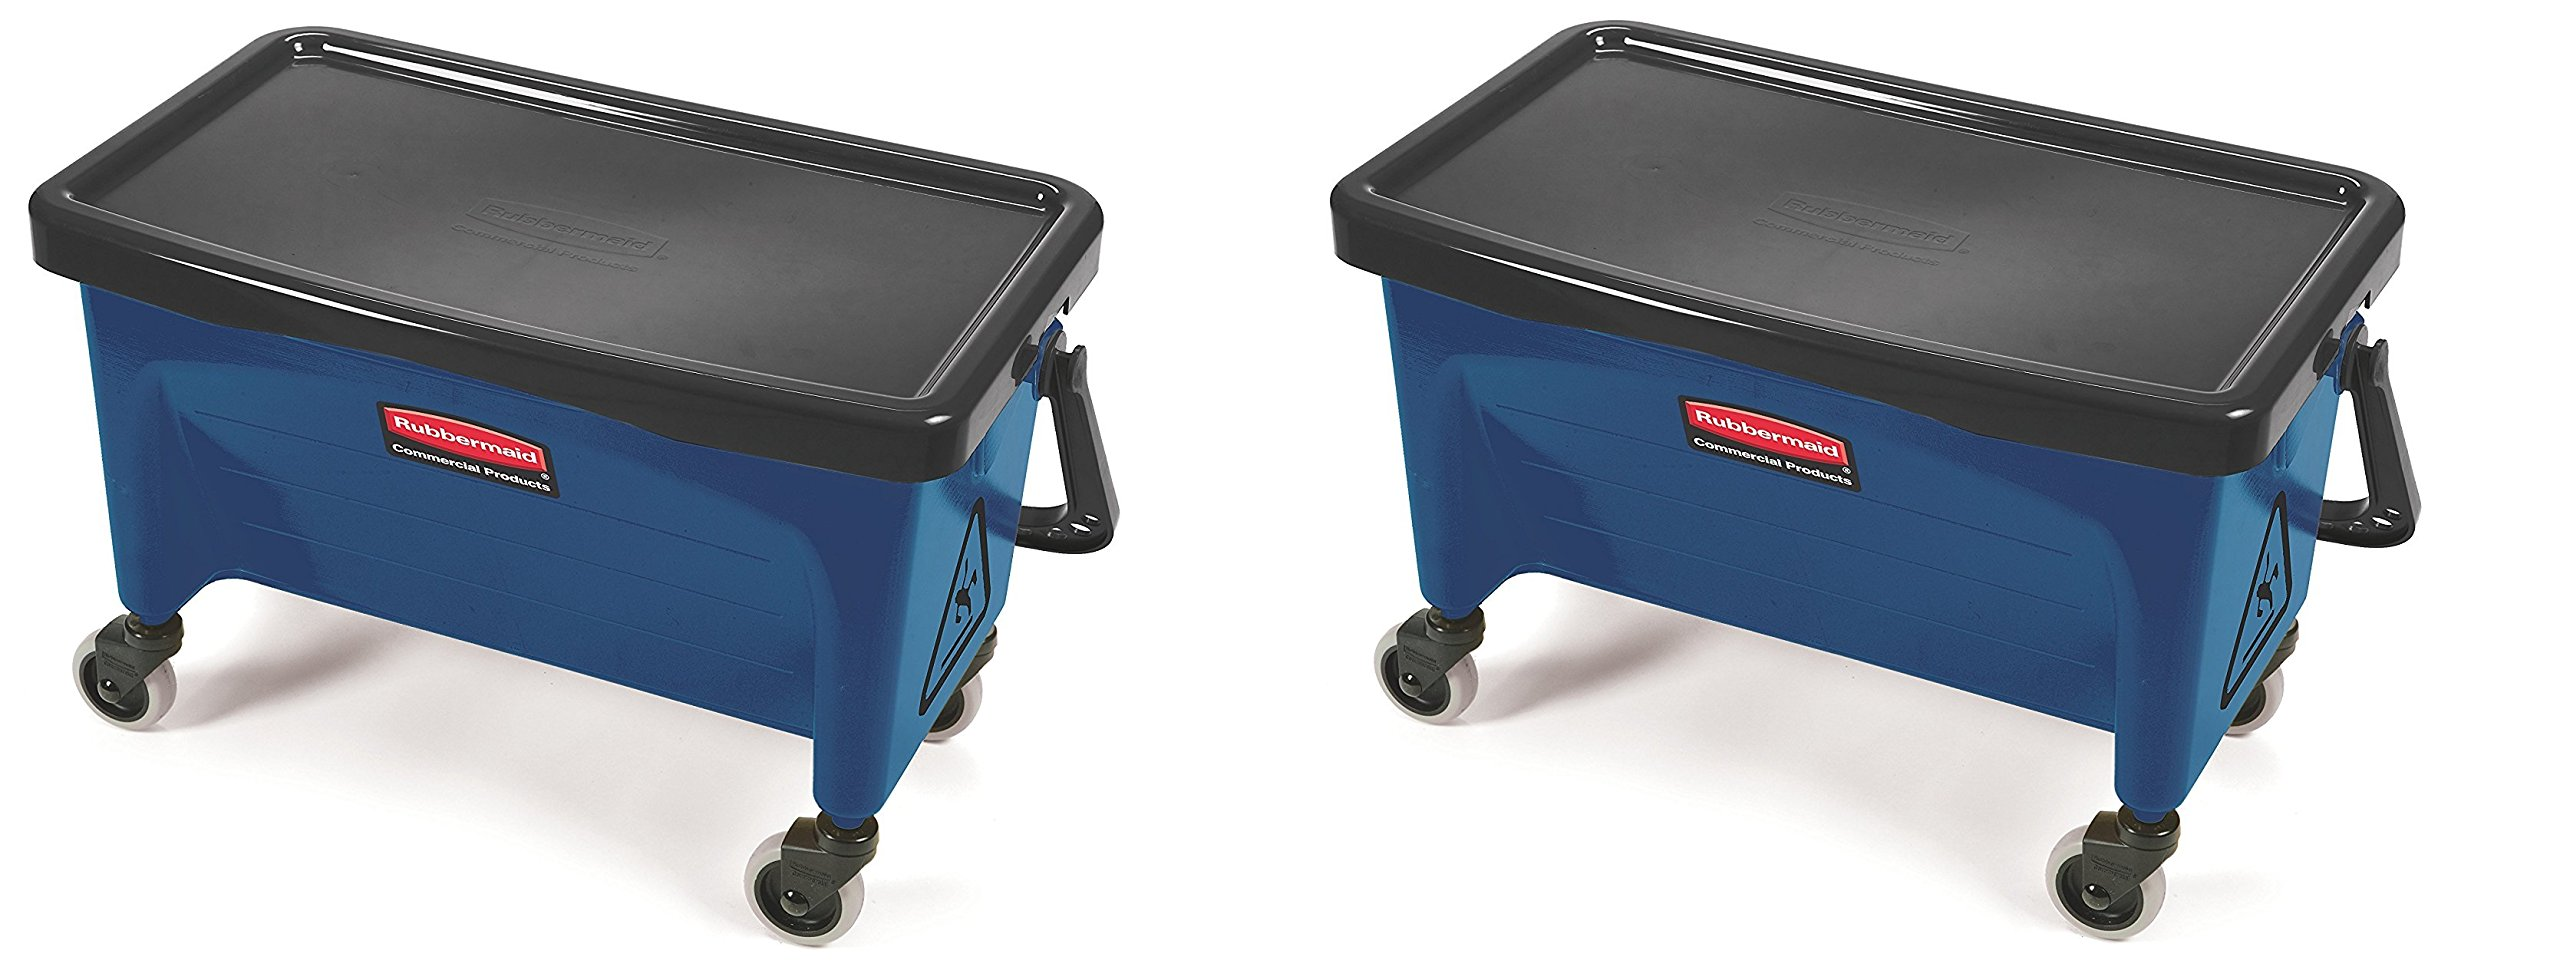 Rubbermaid Commercial Finish Mop Bucket with Wringer, 28-Quart, Blue (2 PACK)